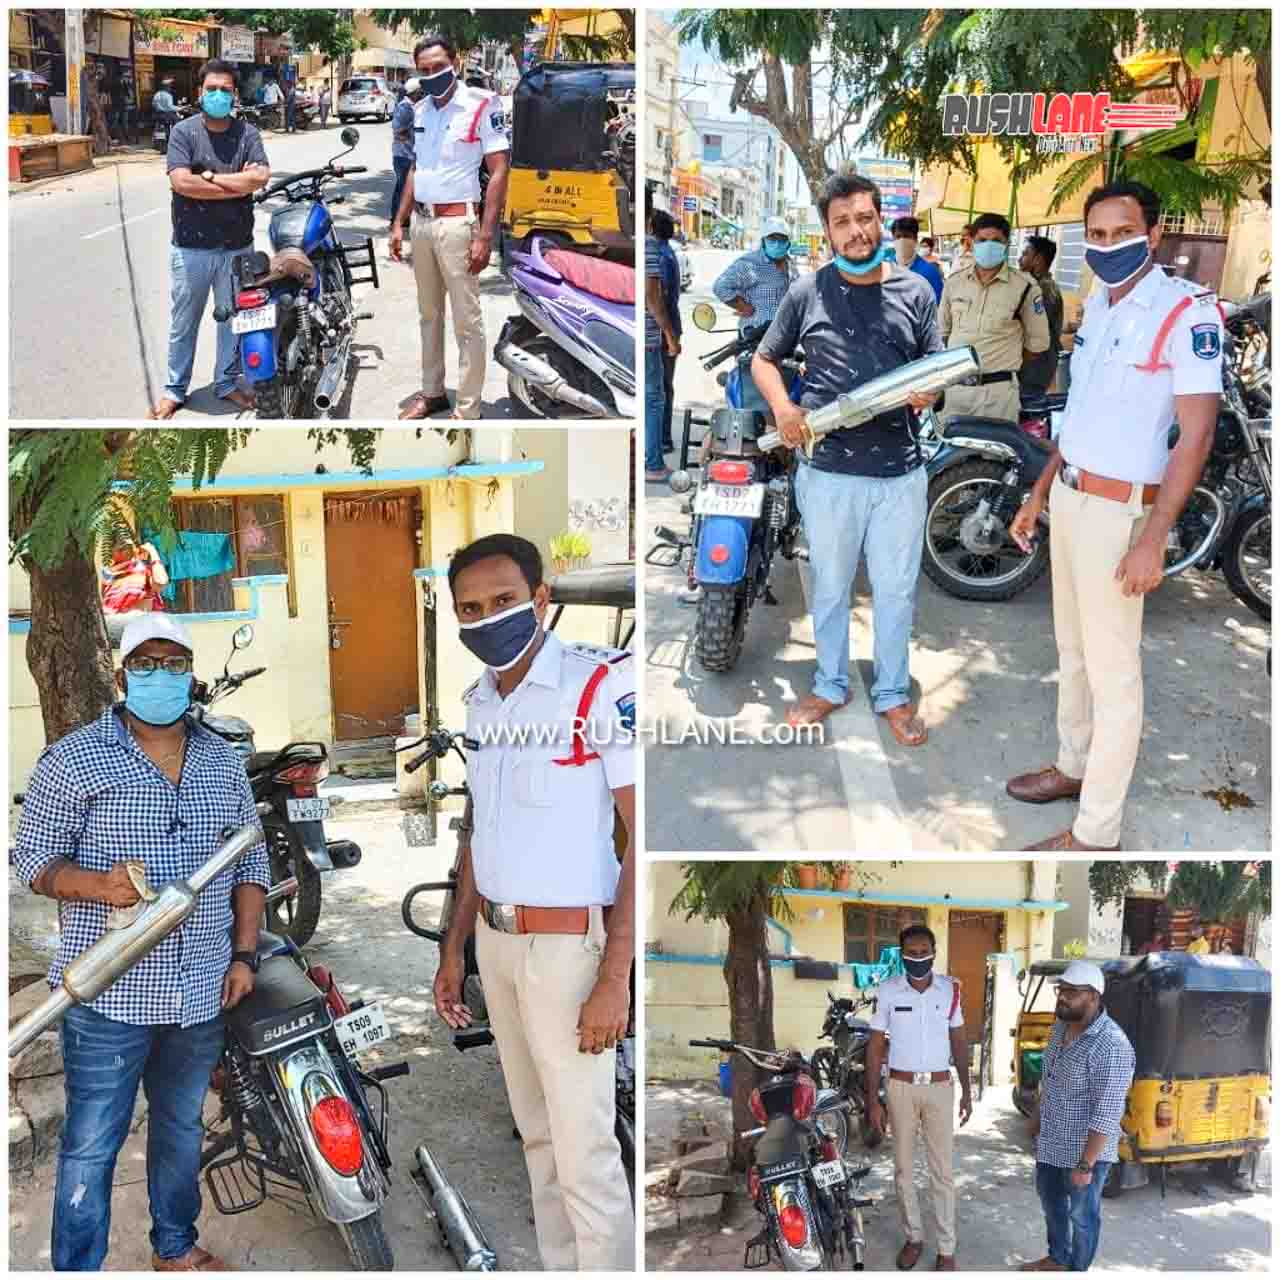 Royal Enfield motorcycles with loud exhausts get fined by Traffic Police